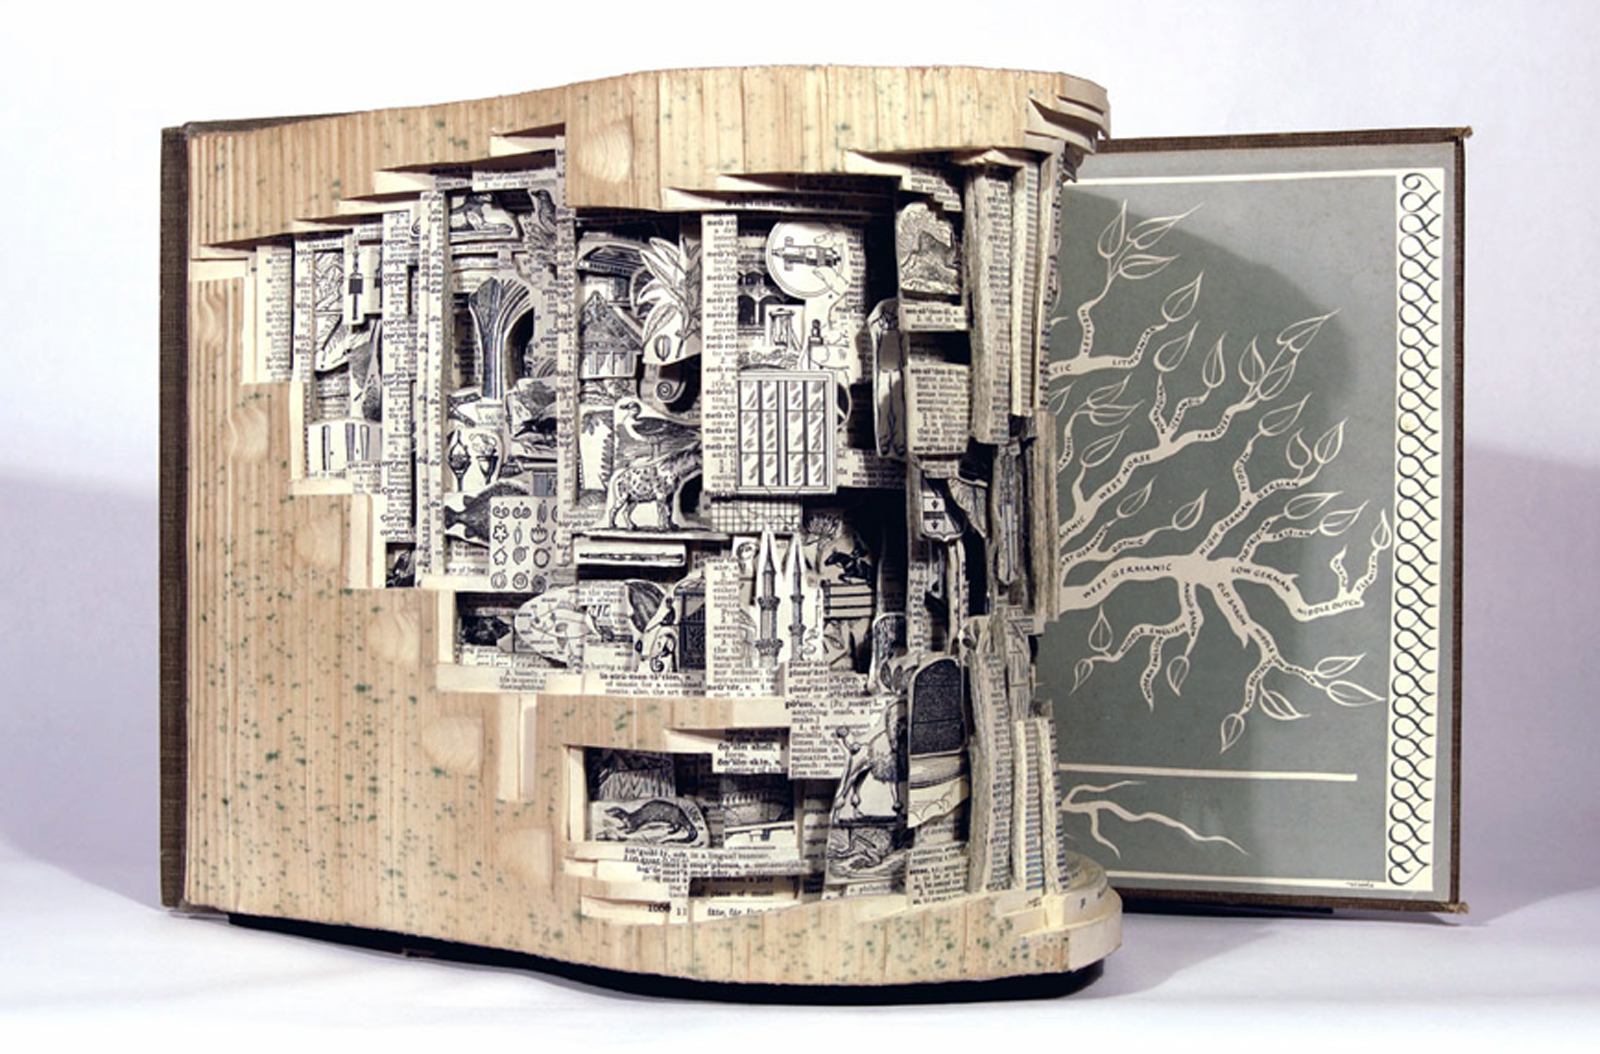 books artist dettmer brian sculptures sculpture artwork carved carving using open artists sculptural pages altered intricate into way gives